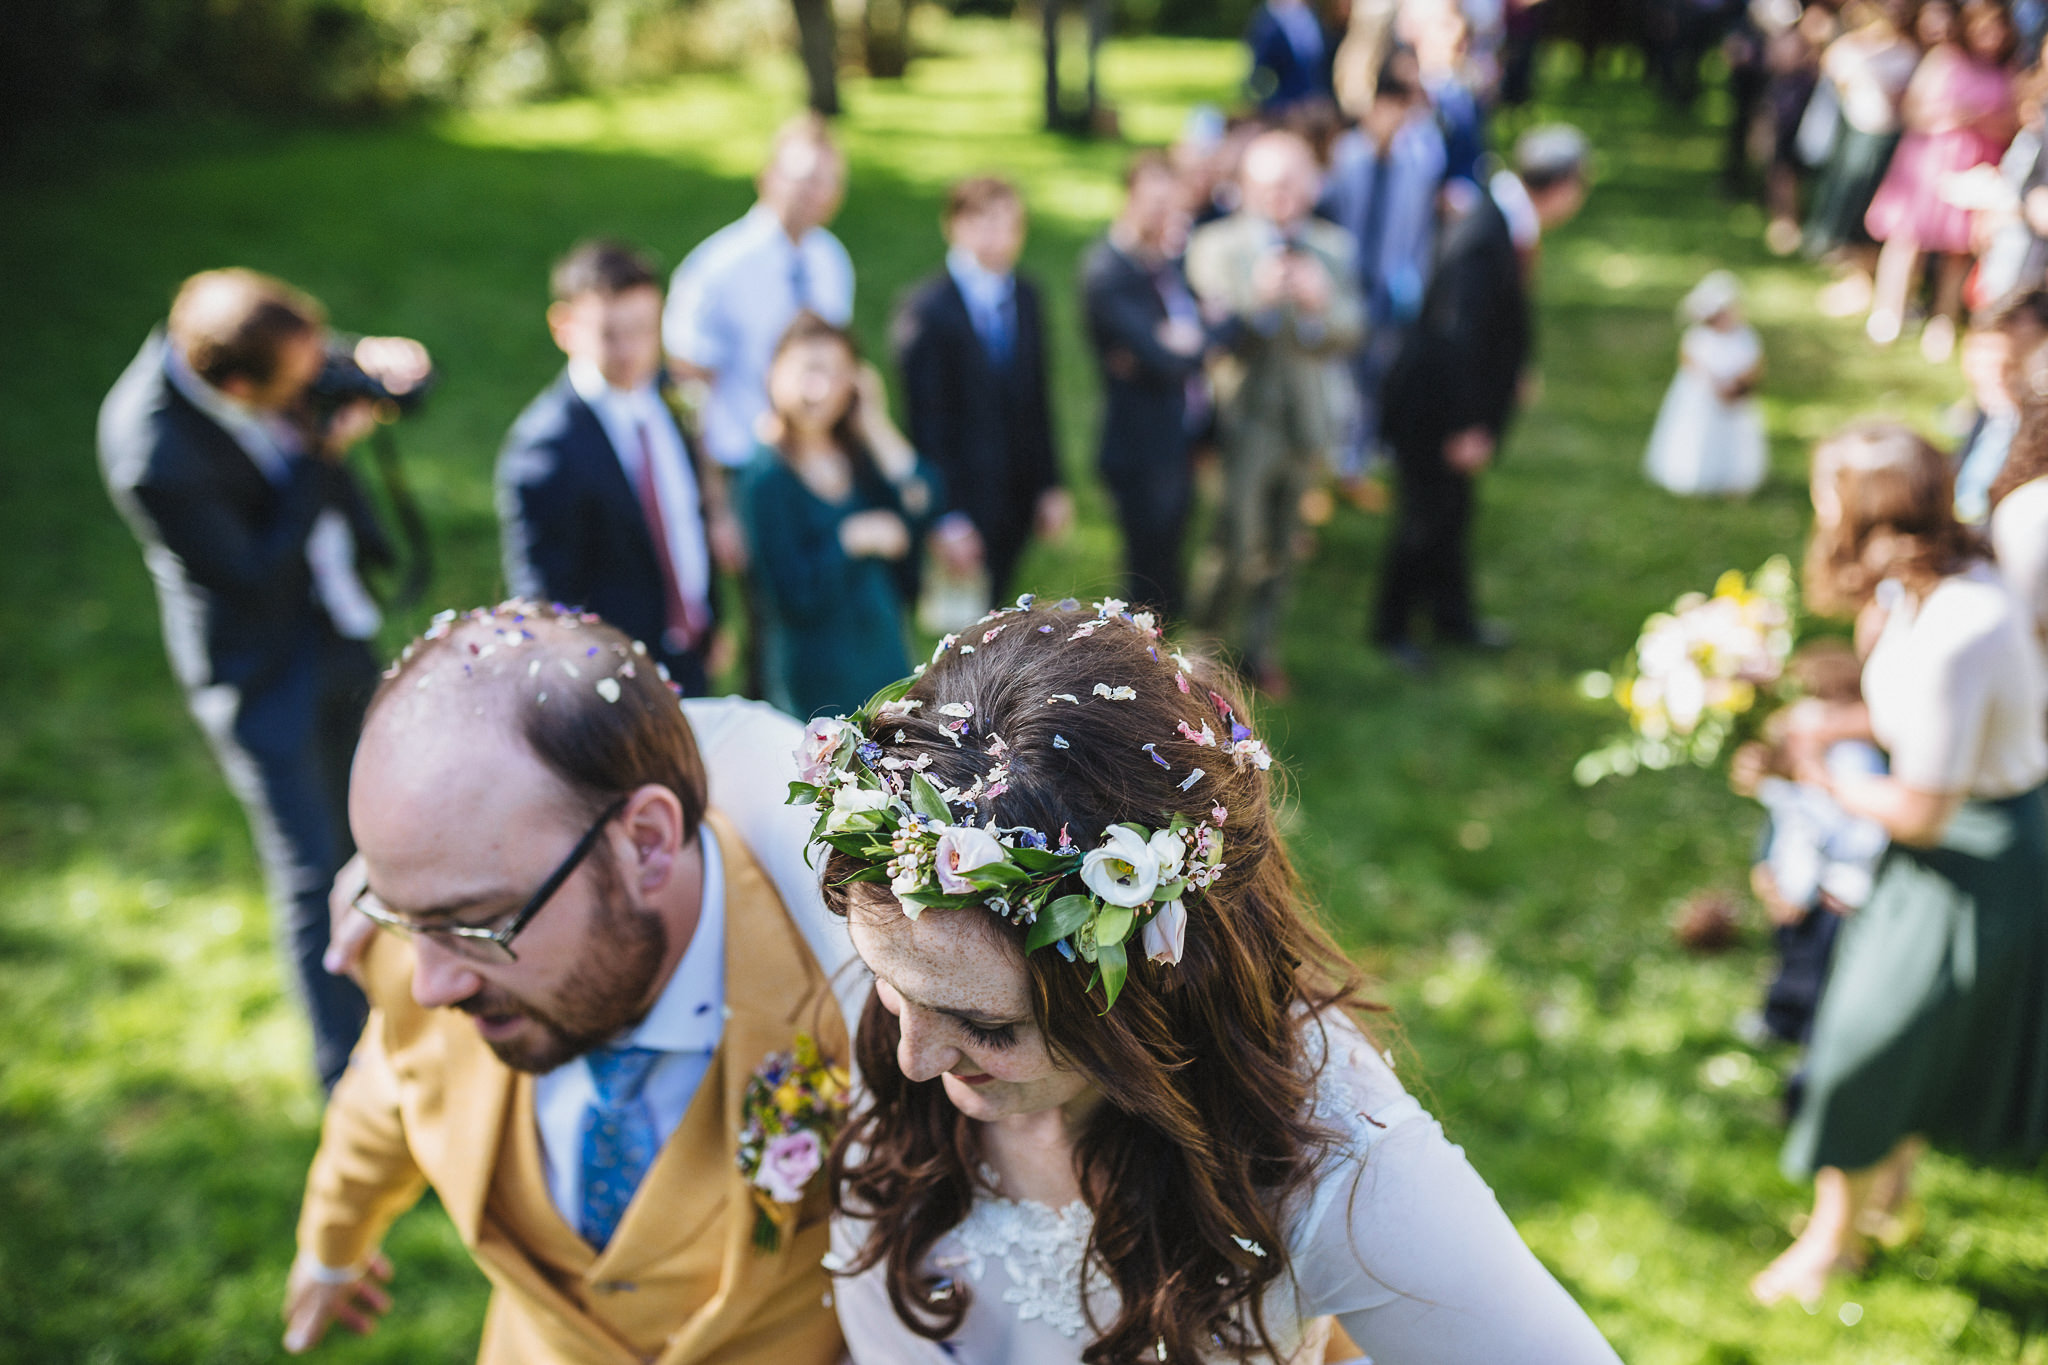 paul-marbrook-Fforest-Wedding-Photographer-90044